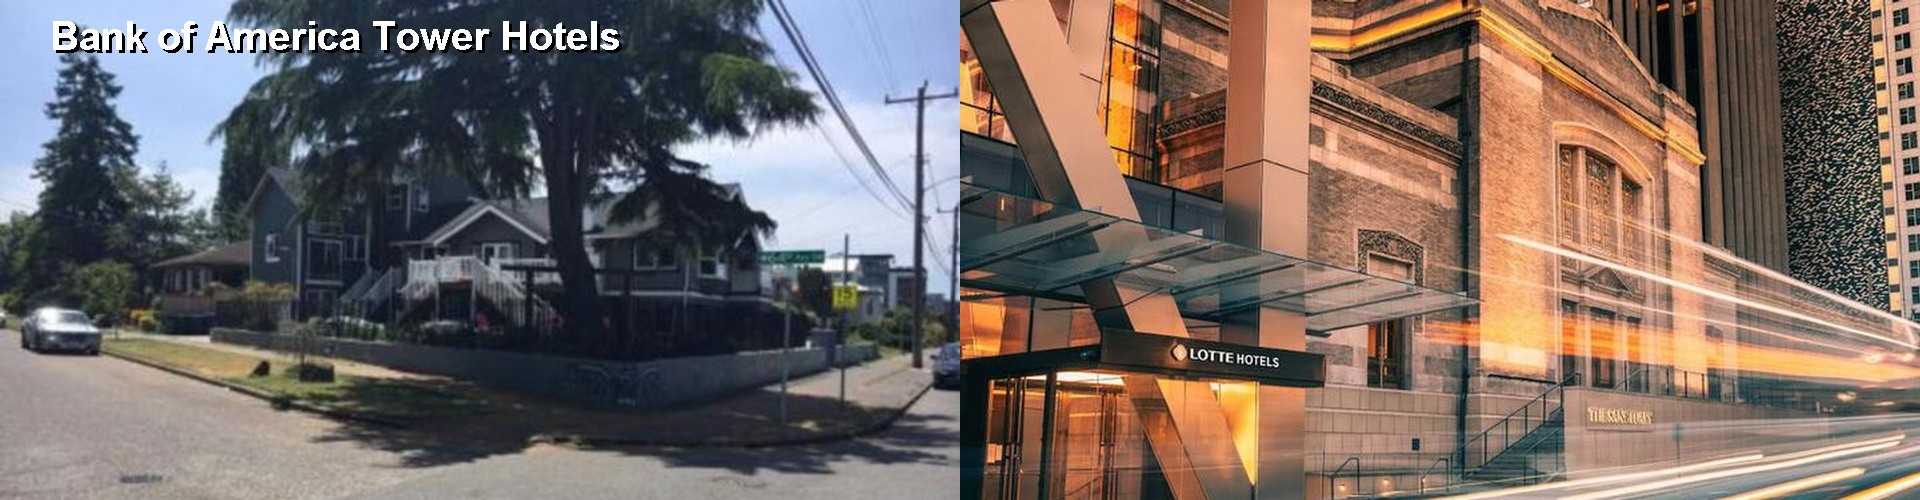 5 Best Hotels near Bank of America Tower